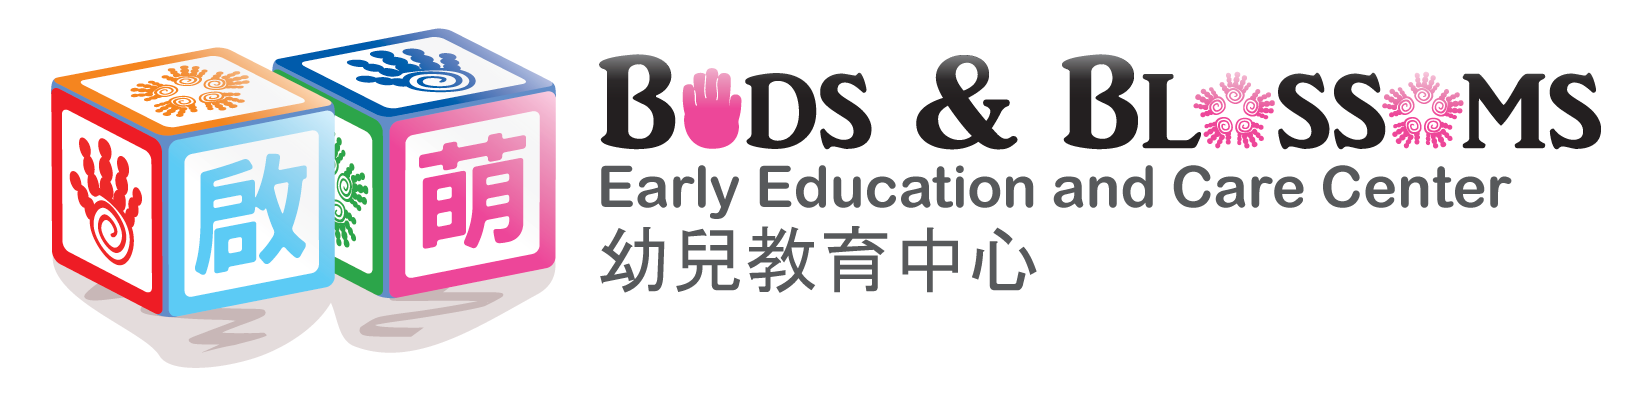 Buds and Blossoms Early Education and Care Center